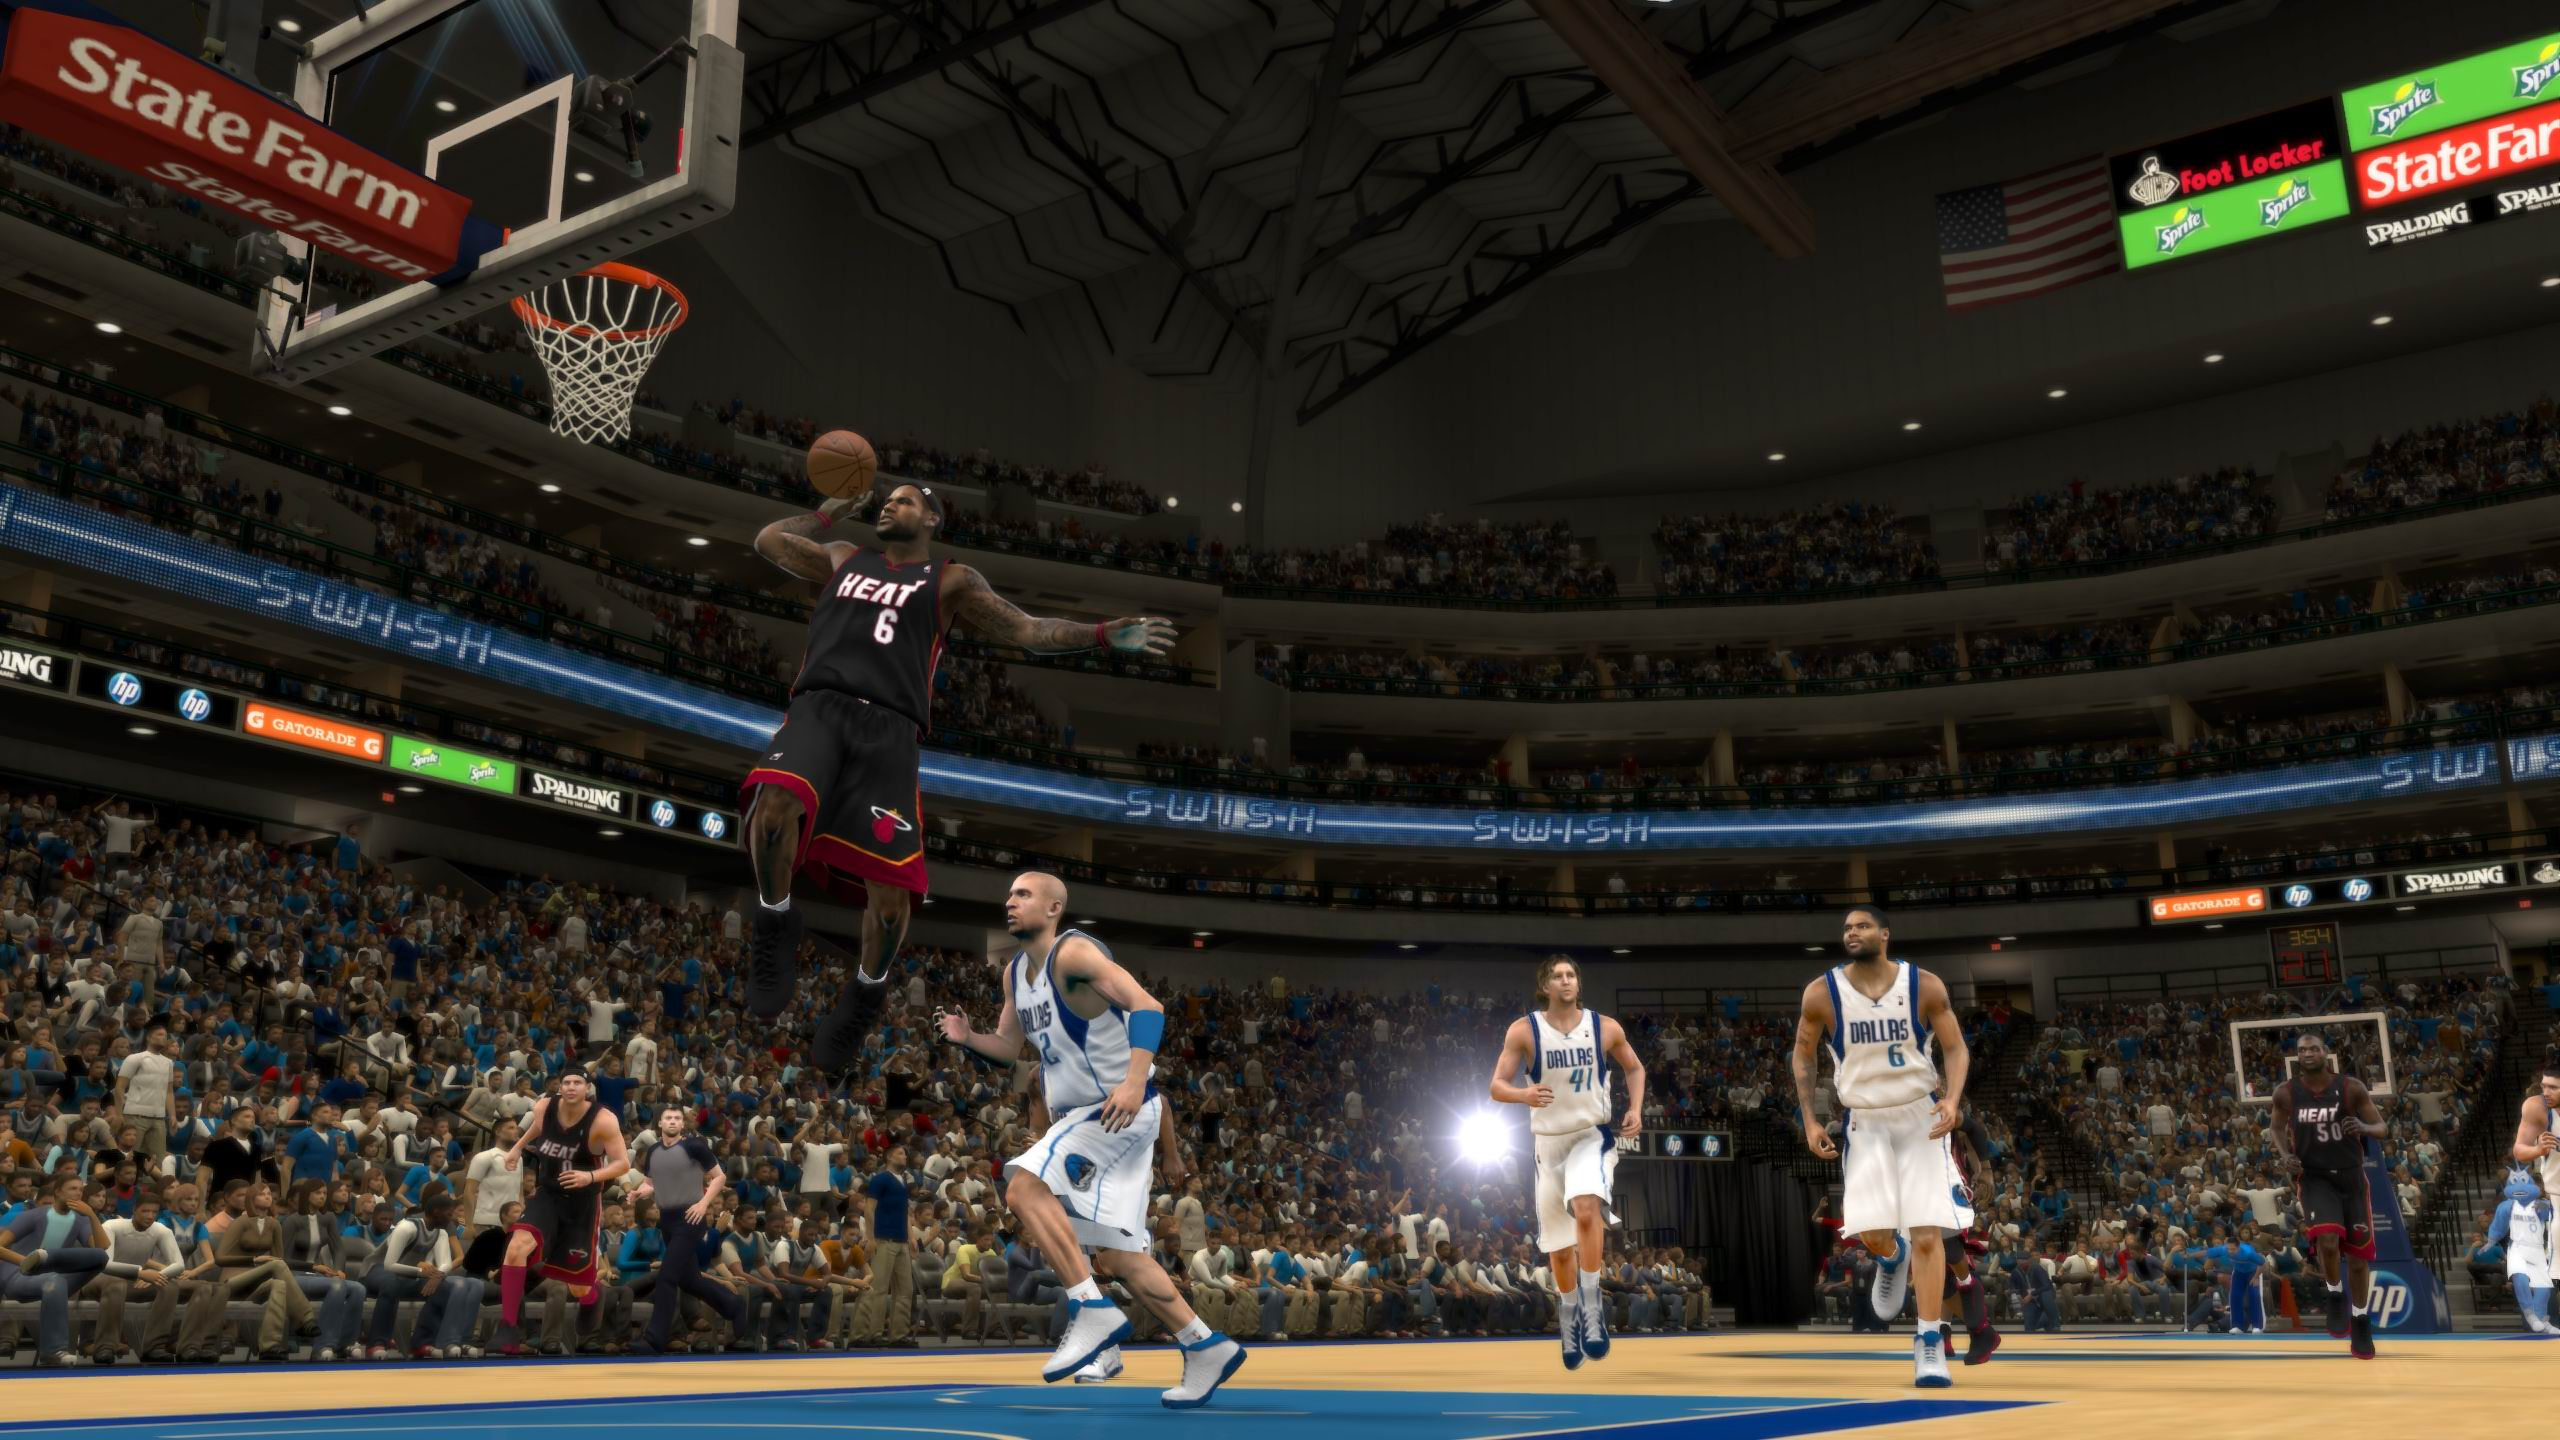 Lebron James dunk against Mavericks NBA 2K12